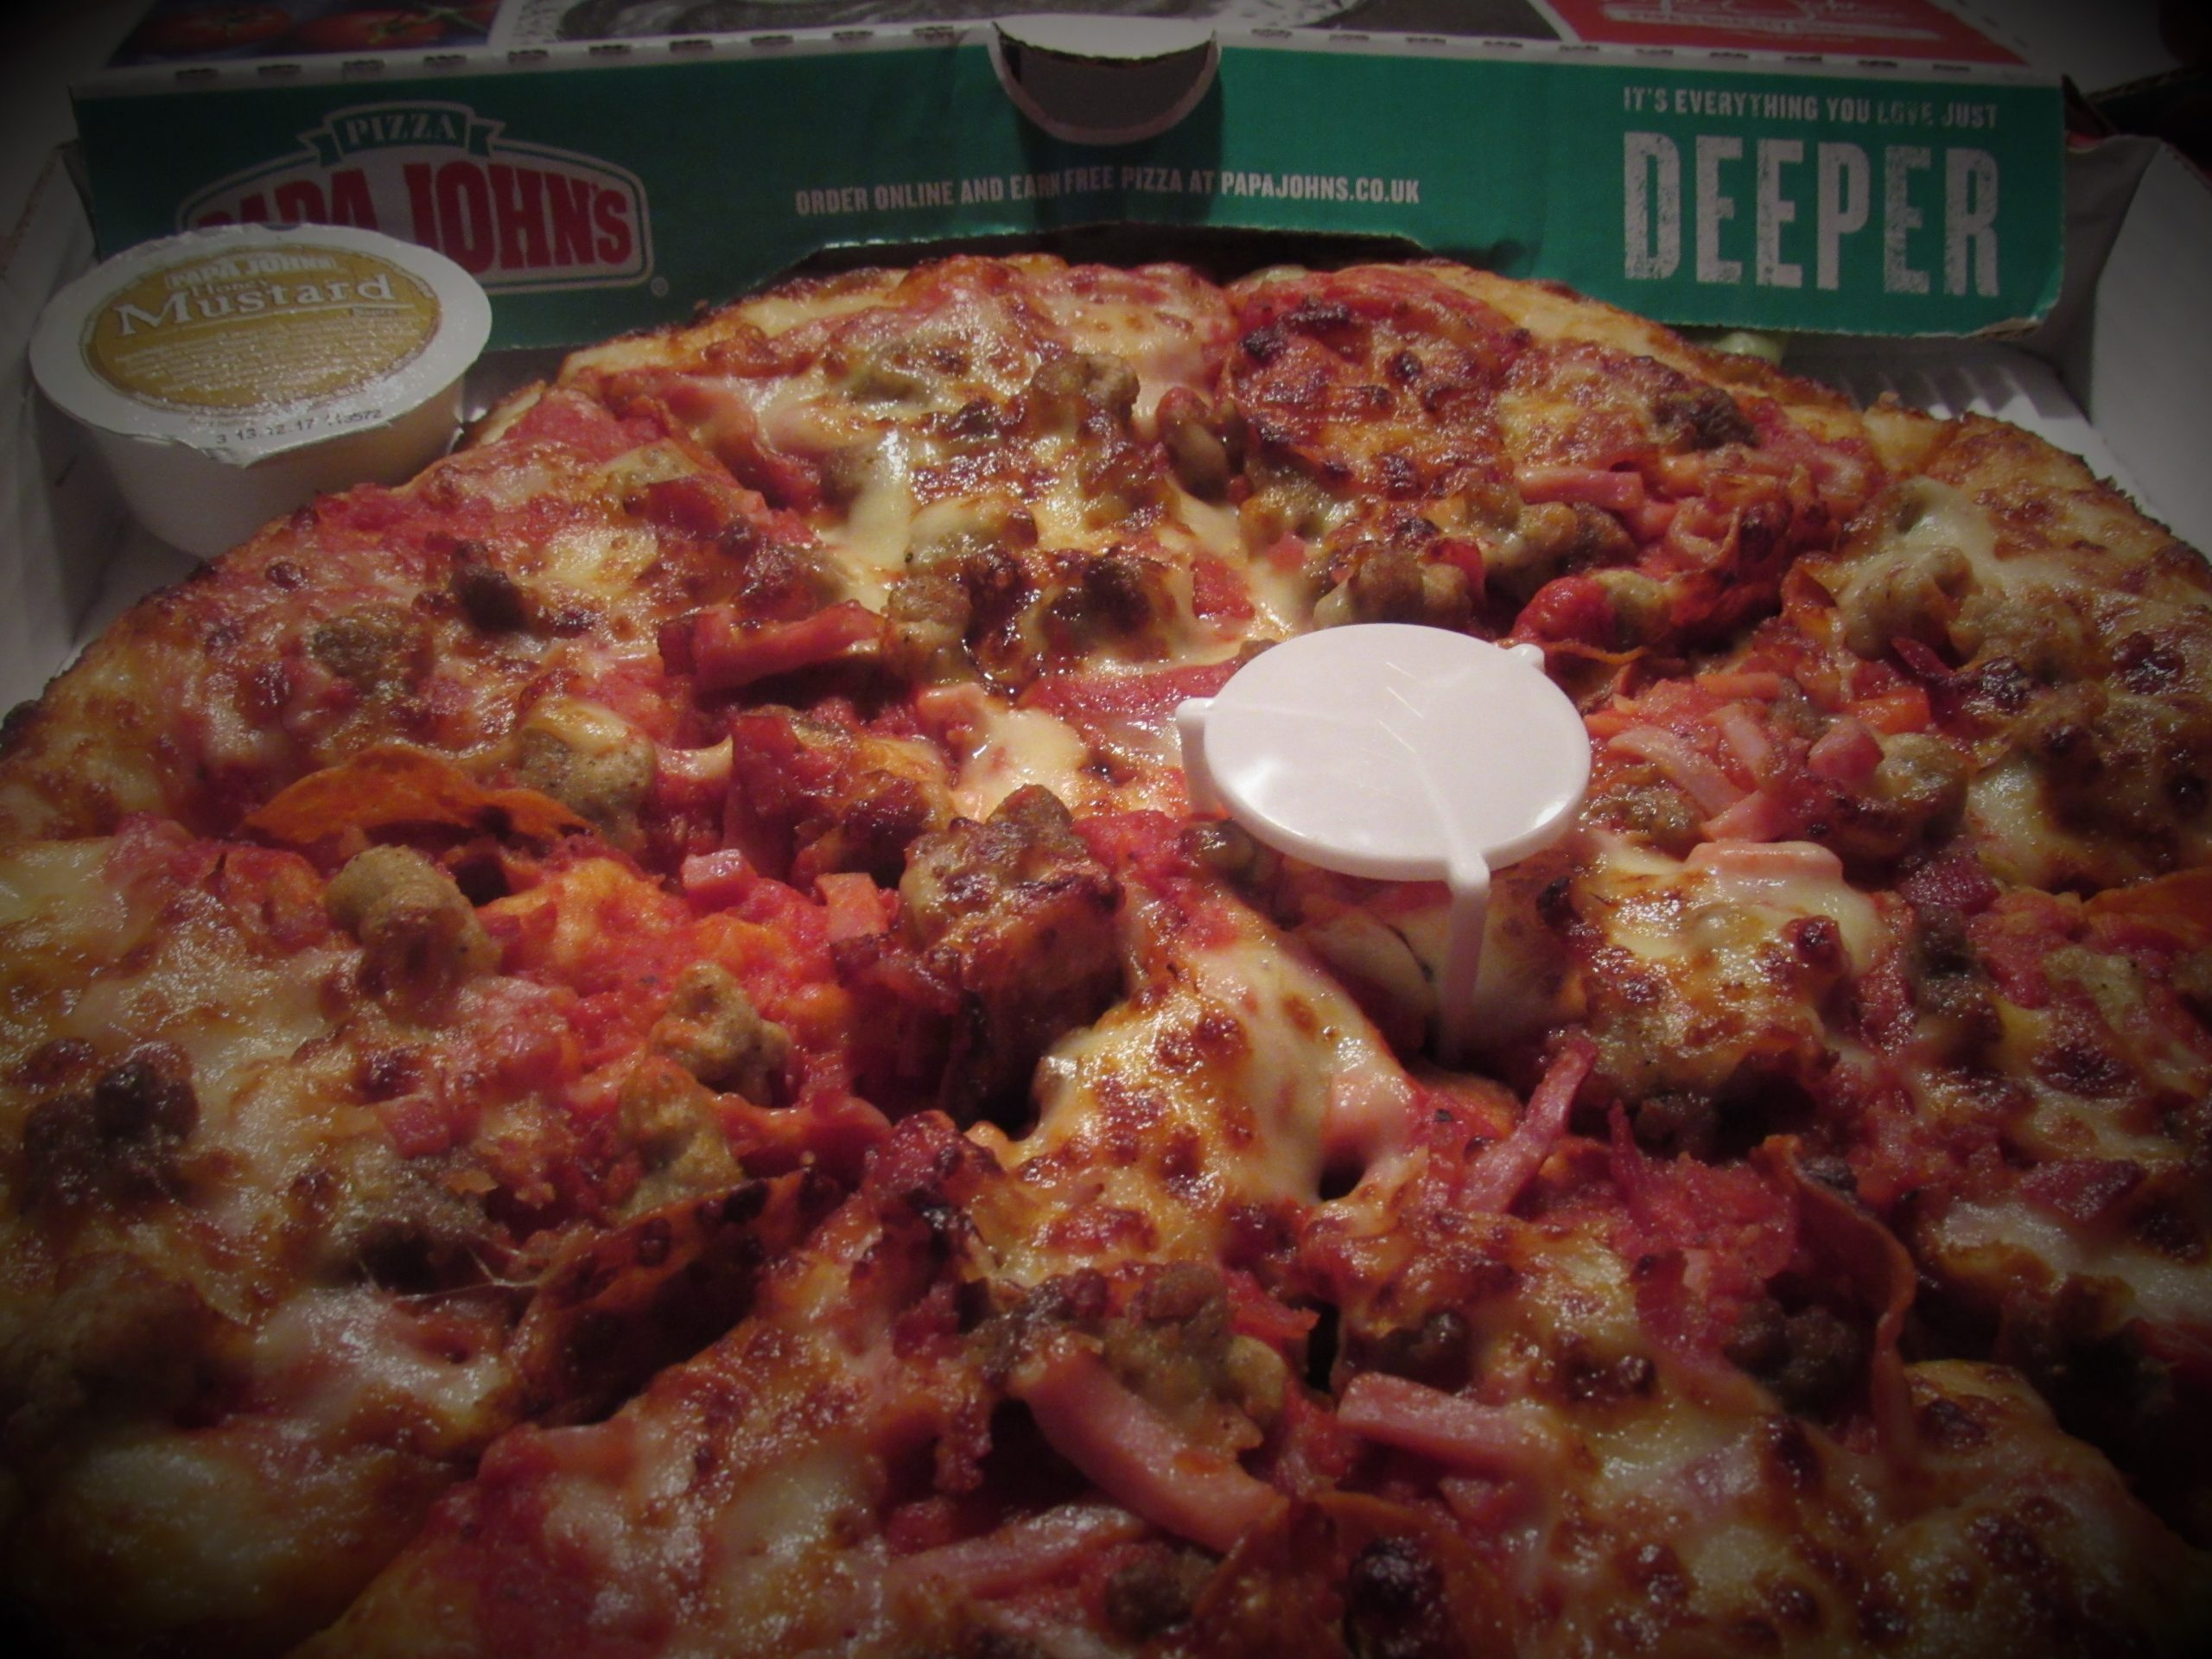 Papa Johns Deep Crust Pizza Review.